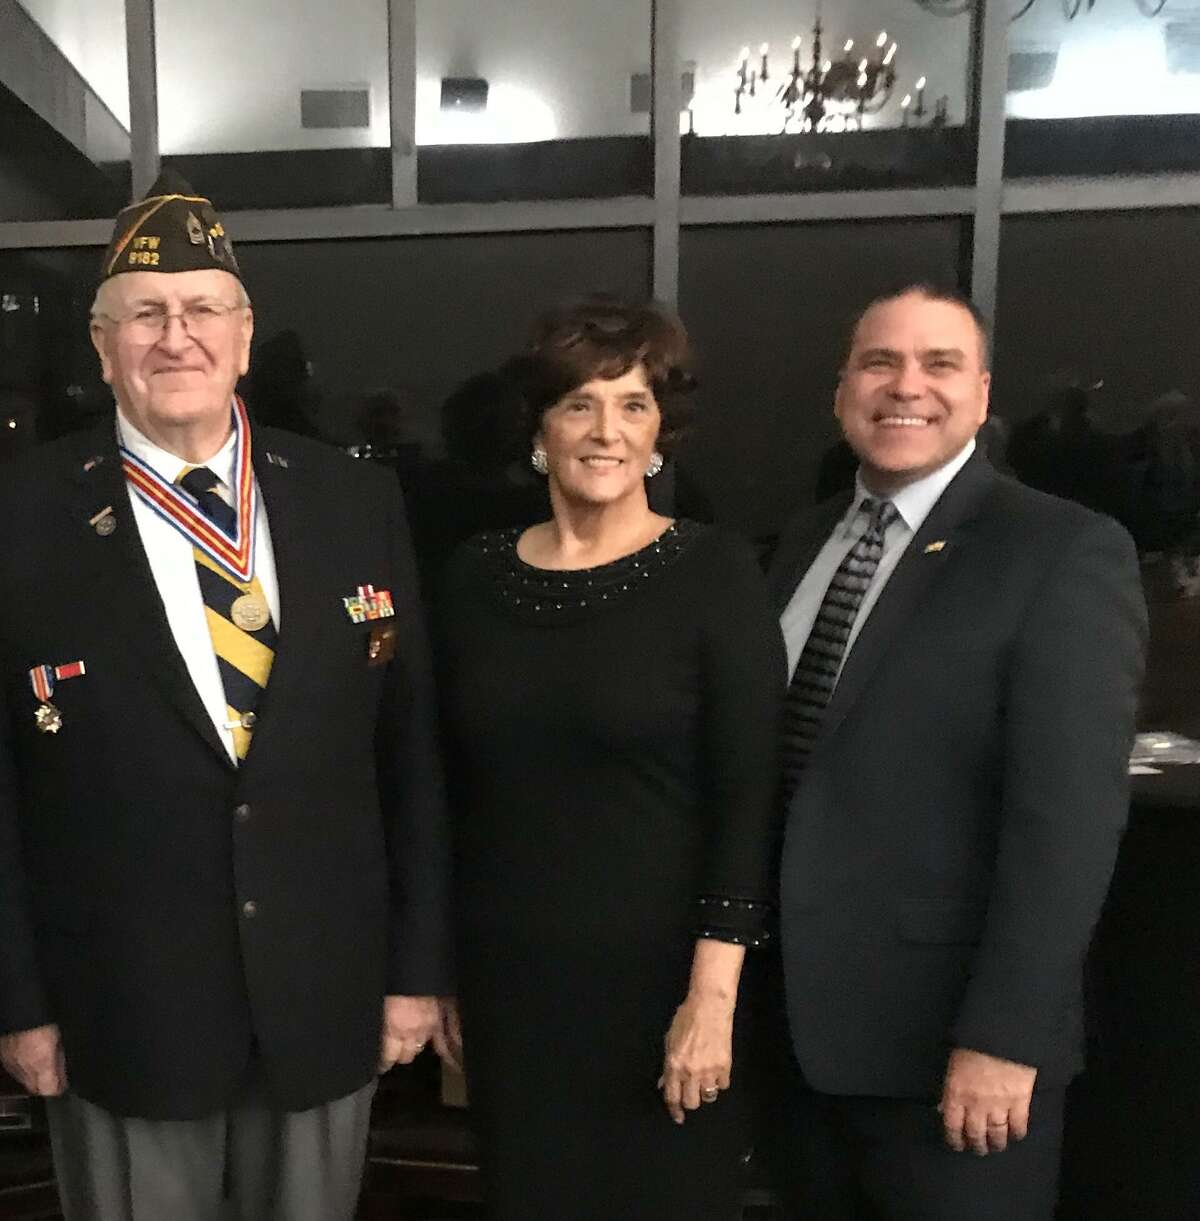 Phyllis Nawrot, a seventh-grade social studies teacher at Cardiff Junior High, received the Citizenship Education Teacher of the Year Award from Katy Veterans of Foreign Wars Post 9182. With her areKaty VFW Post 9182 Commander Don Byrne, left, and Katy Independent School District SuperintendentKenneth Gregorski.